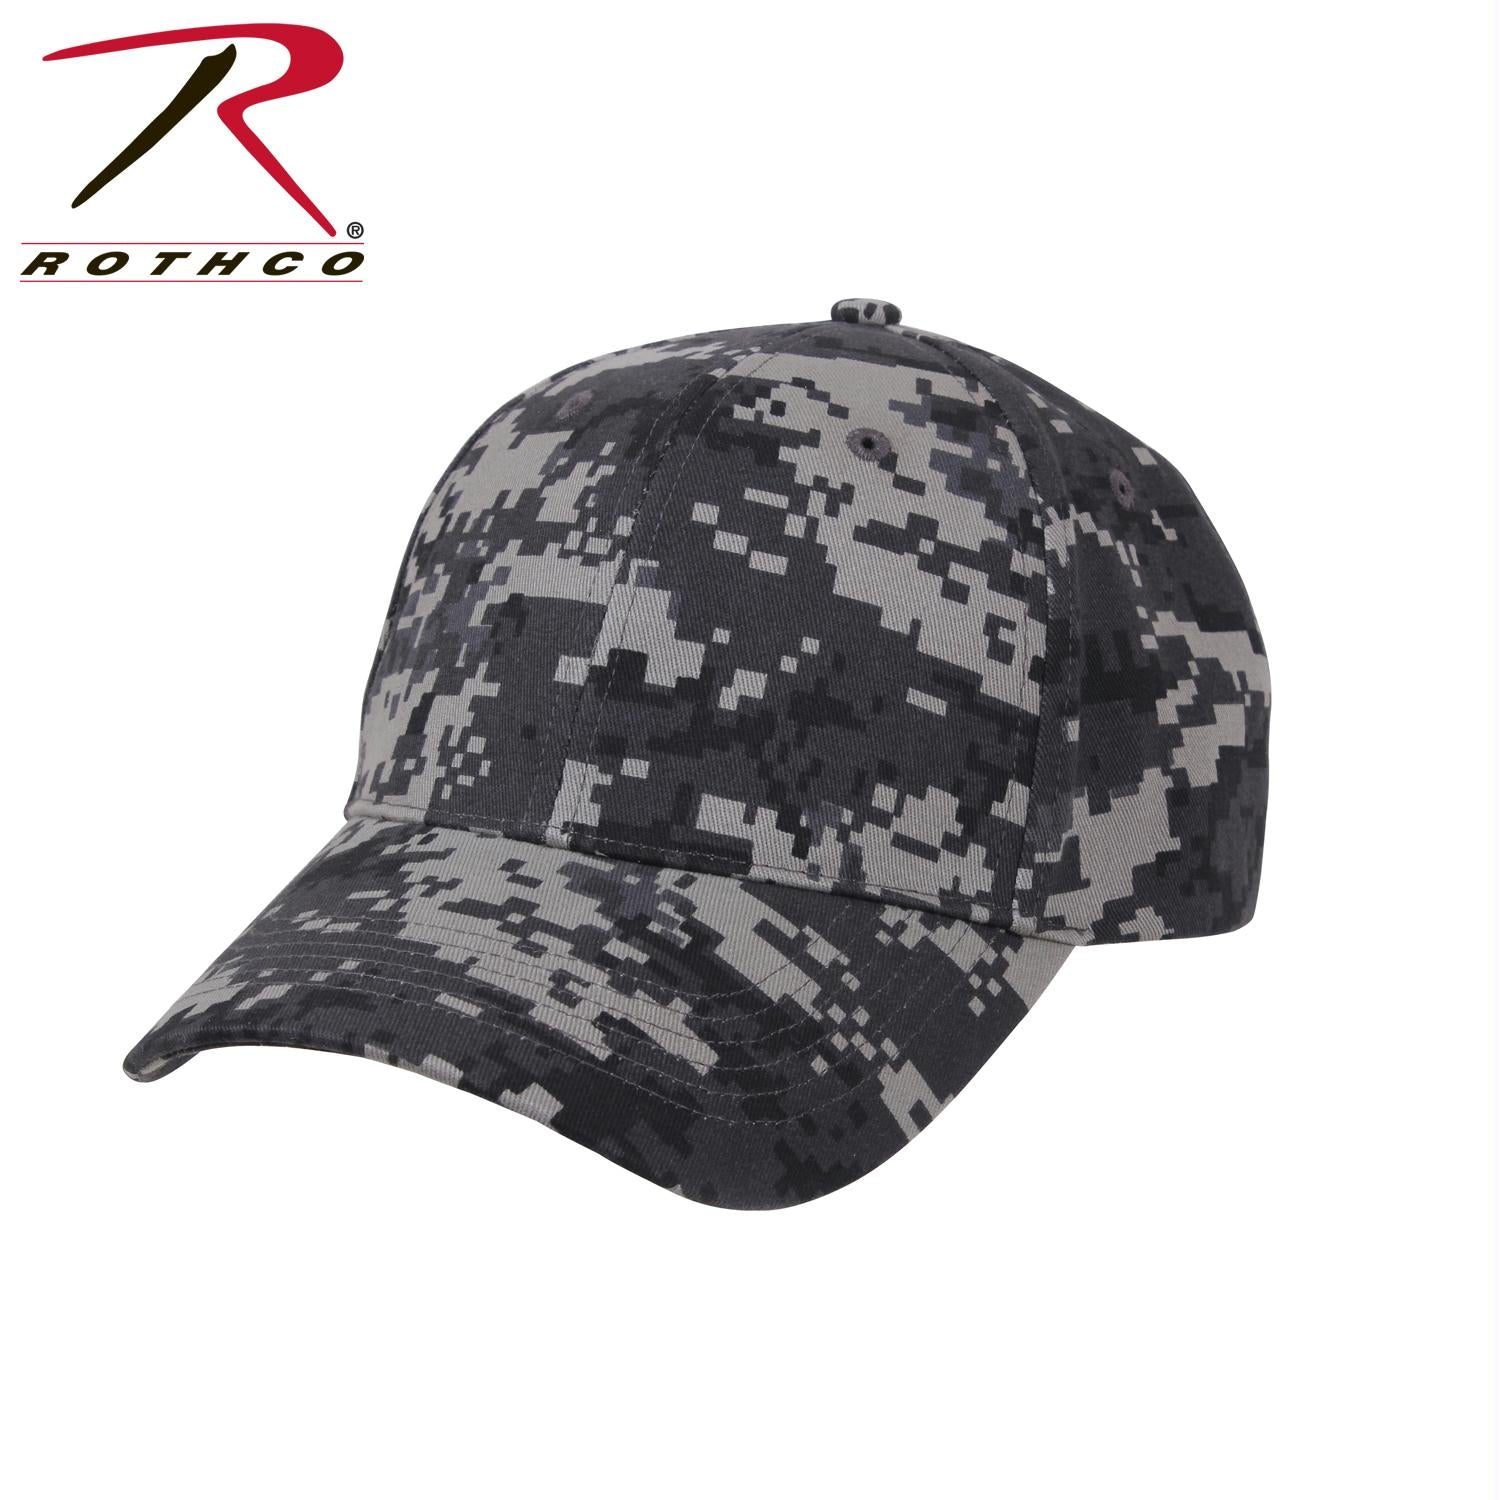 Rothco Supreme Camo Low Profile Cap - Subdued Urban Digital Camo / One Size